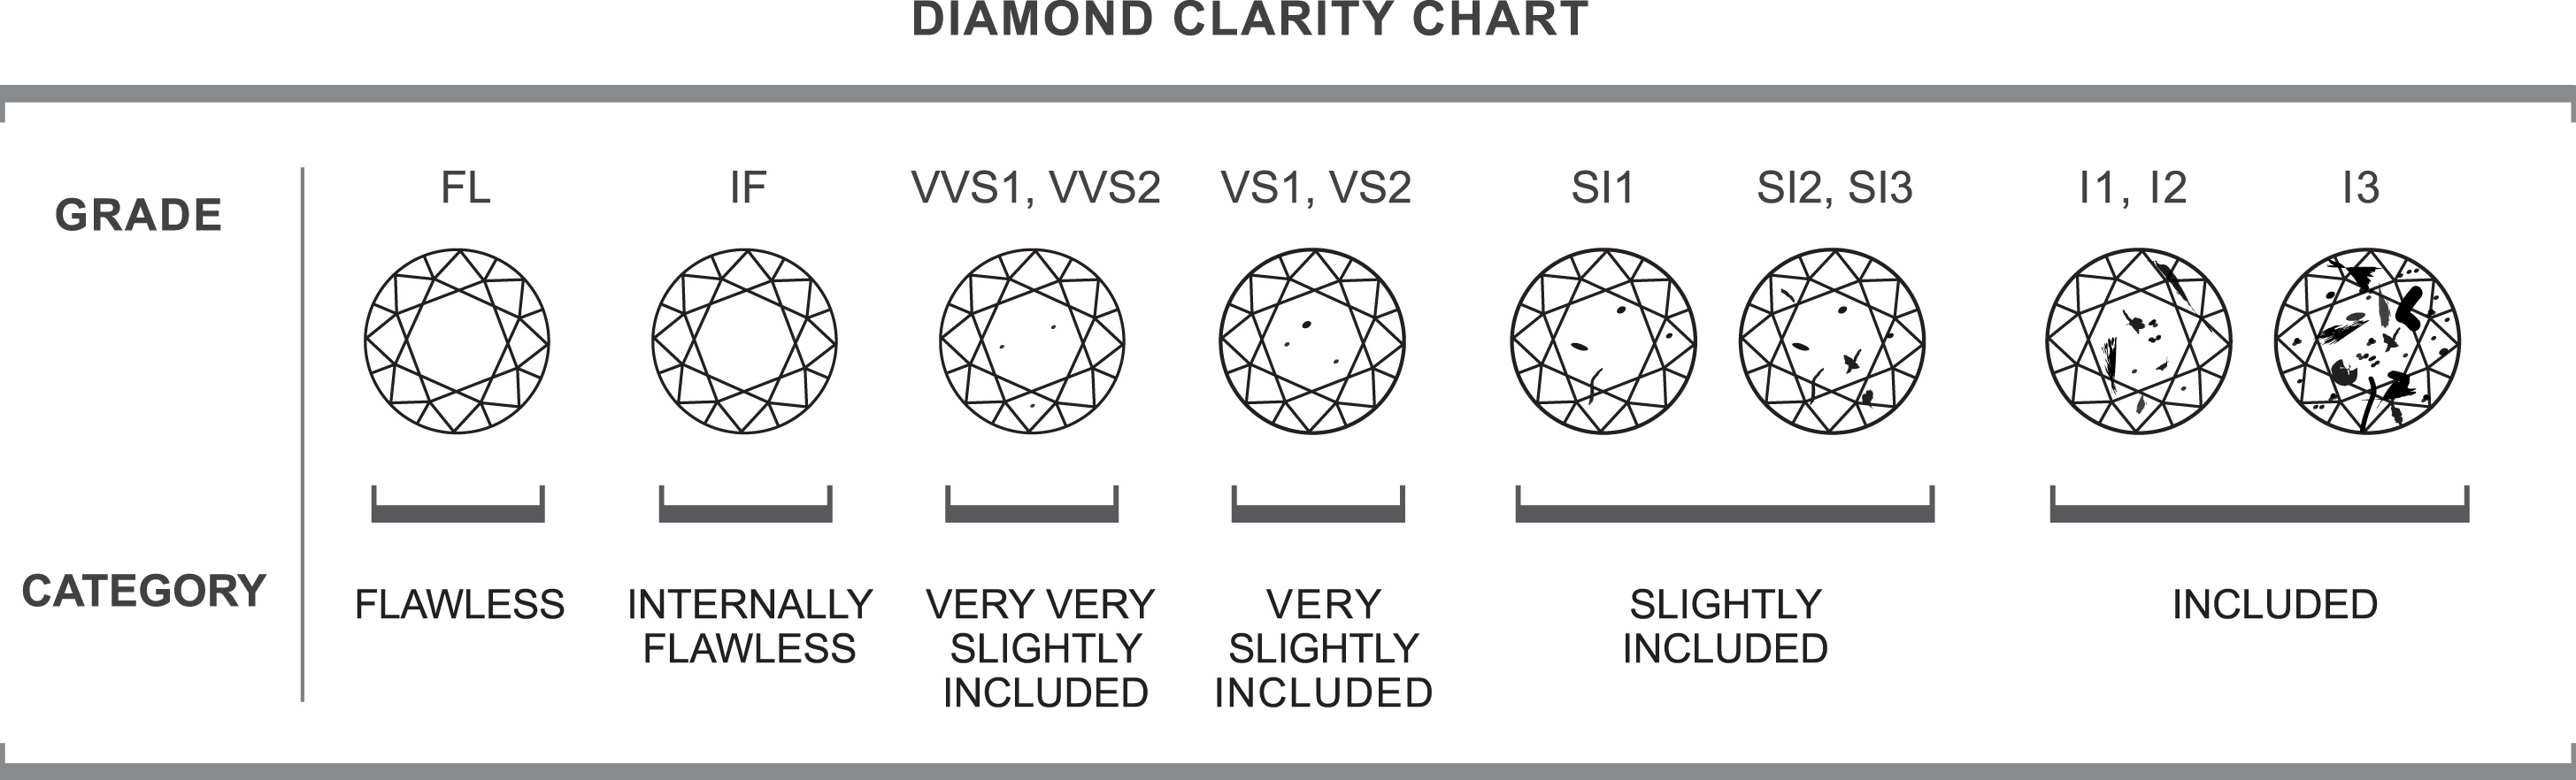 archive tag color grading diamond s seller chart guide